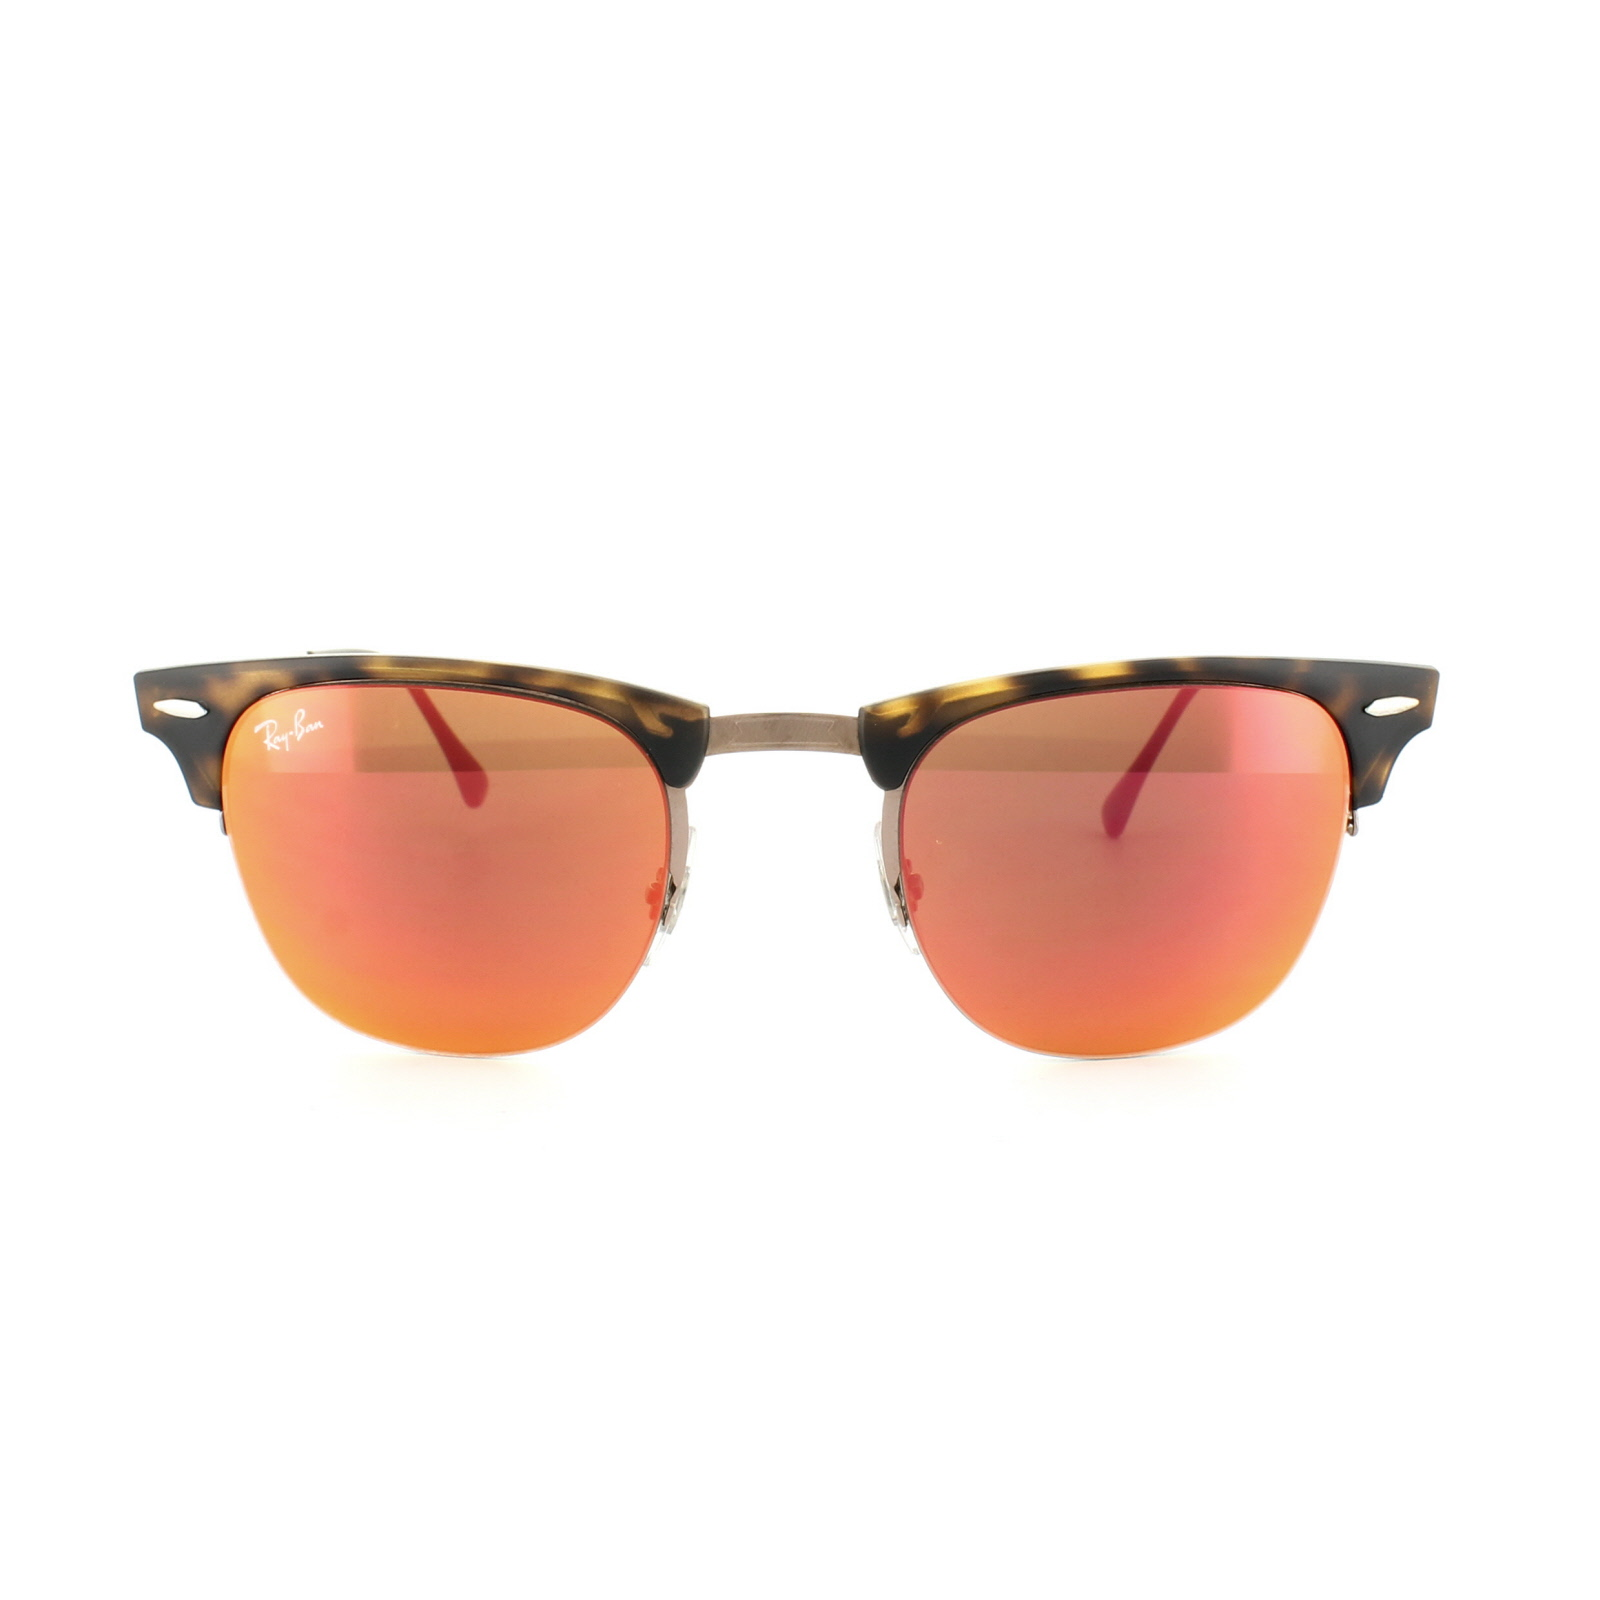 82755c7ee8 Sentinel Ray-Ban Sunglasses Clubmaster Light Ray 8056 175/6Q Havana Brown  Red Mirror